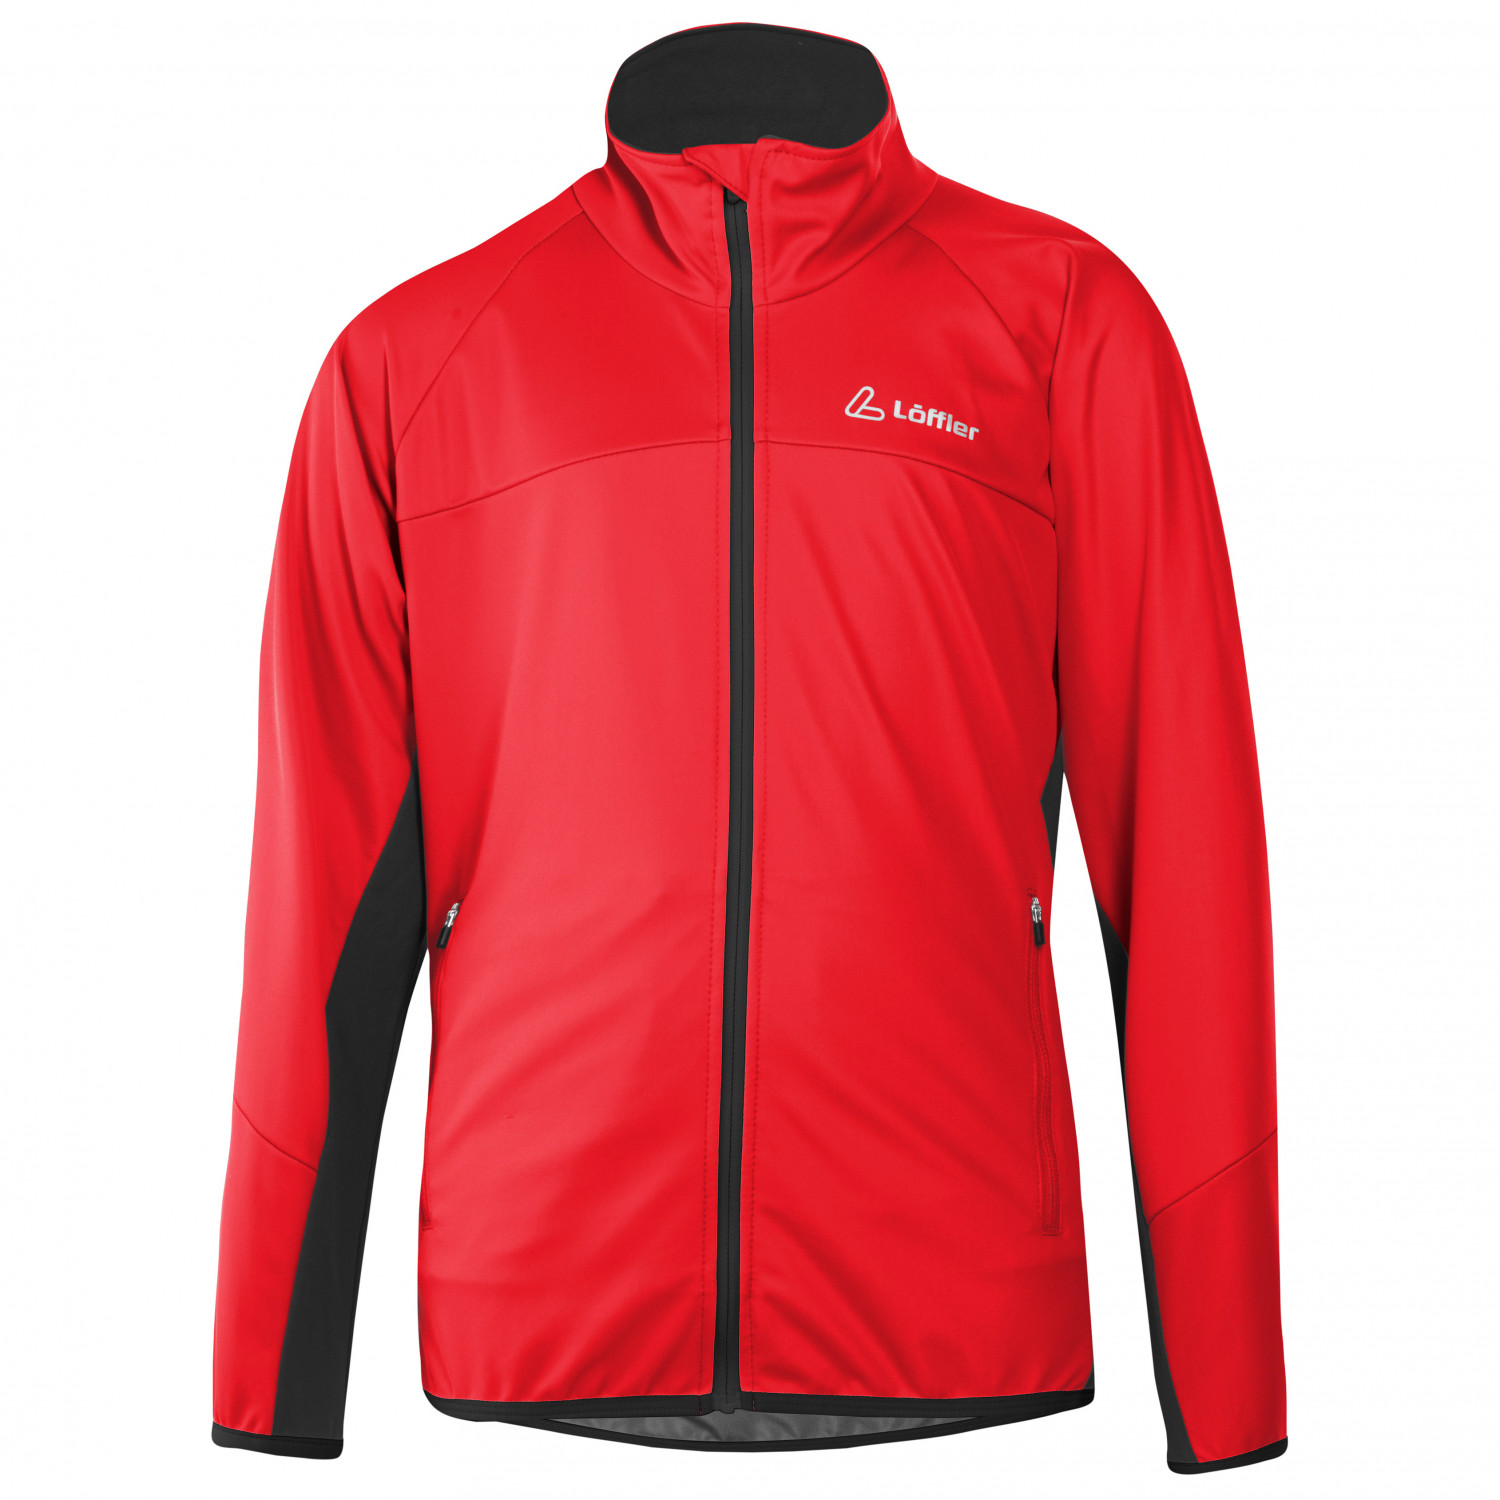 Löffler ALPHA WS LIGHT Softshelljacke für Kinder - rot